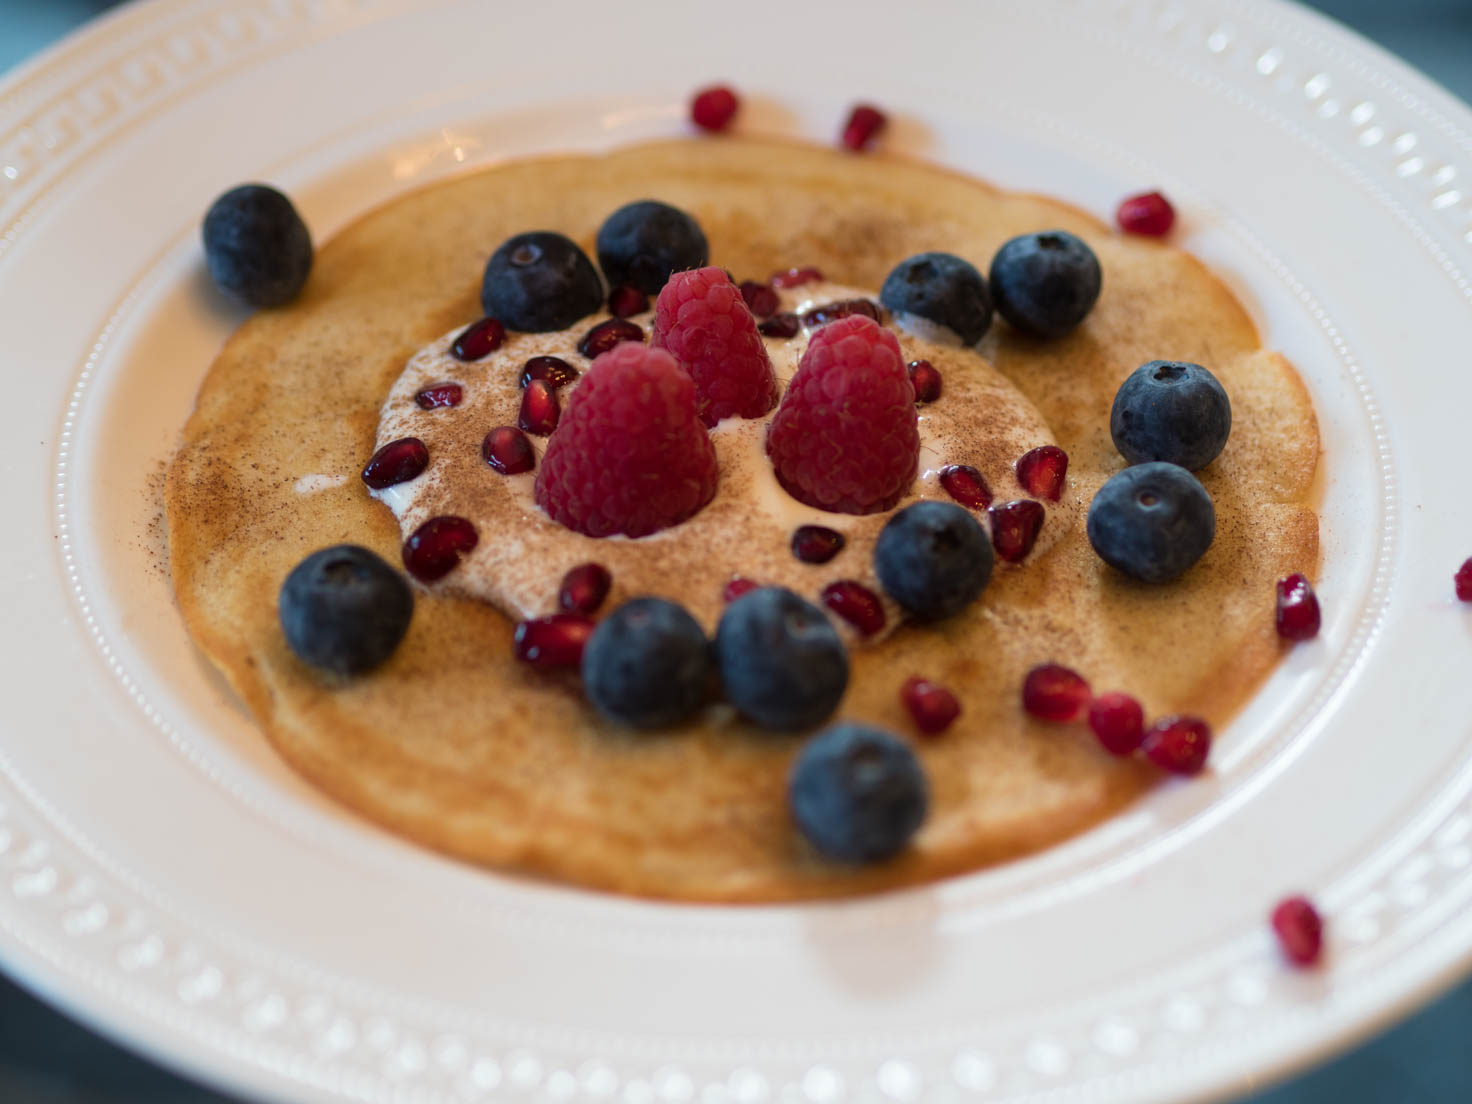 Buckwheat pancakes with lactose free yogurt and berries